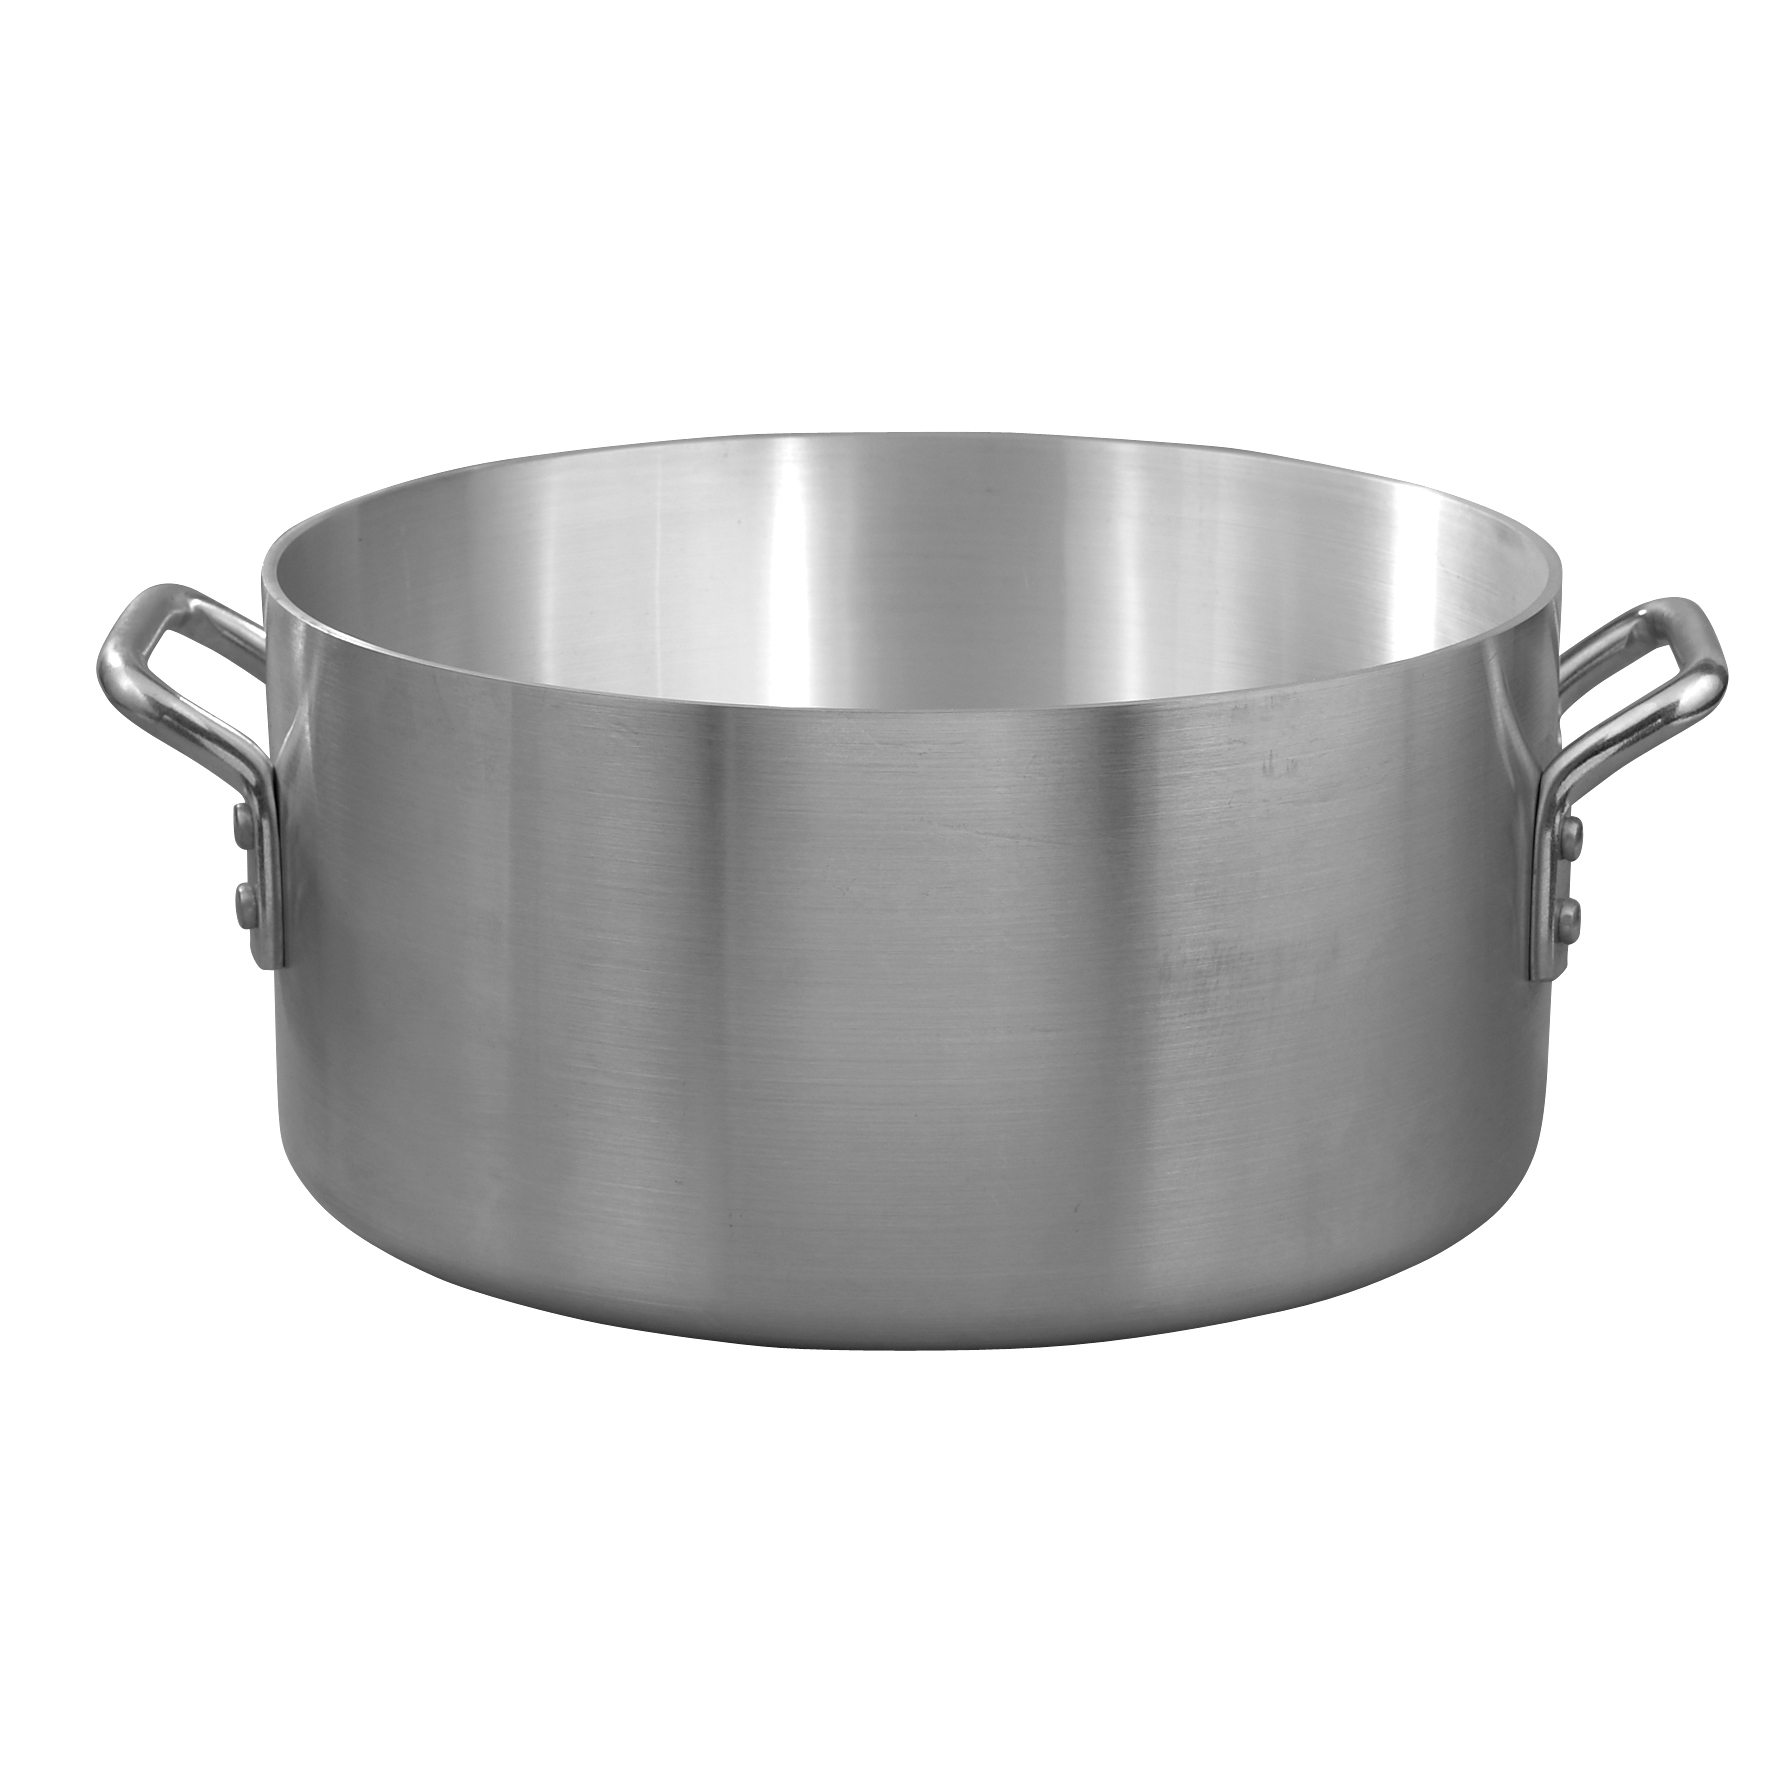 Winco APS-PT pasta pot